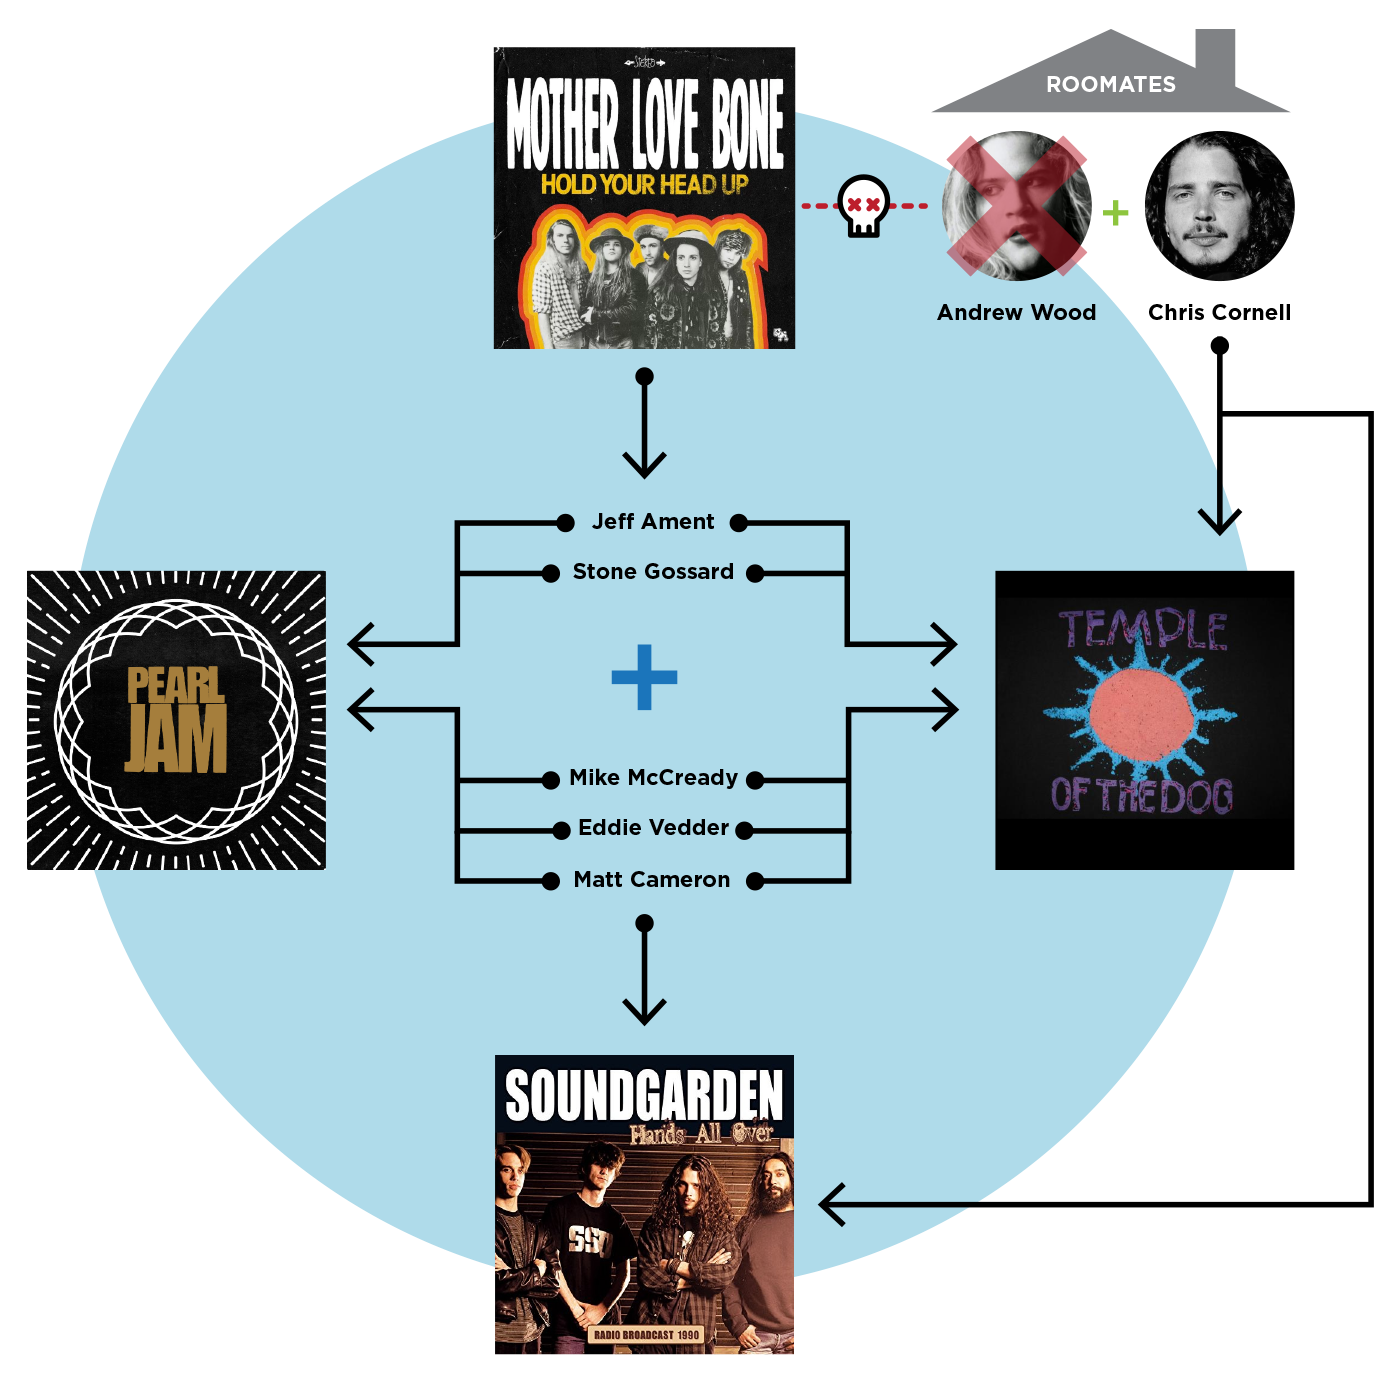 Org Chart of Temple of the Dog